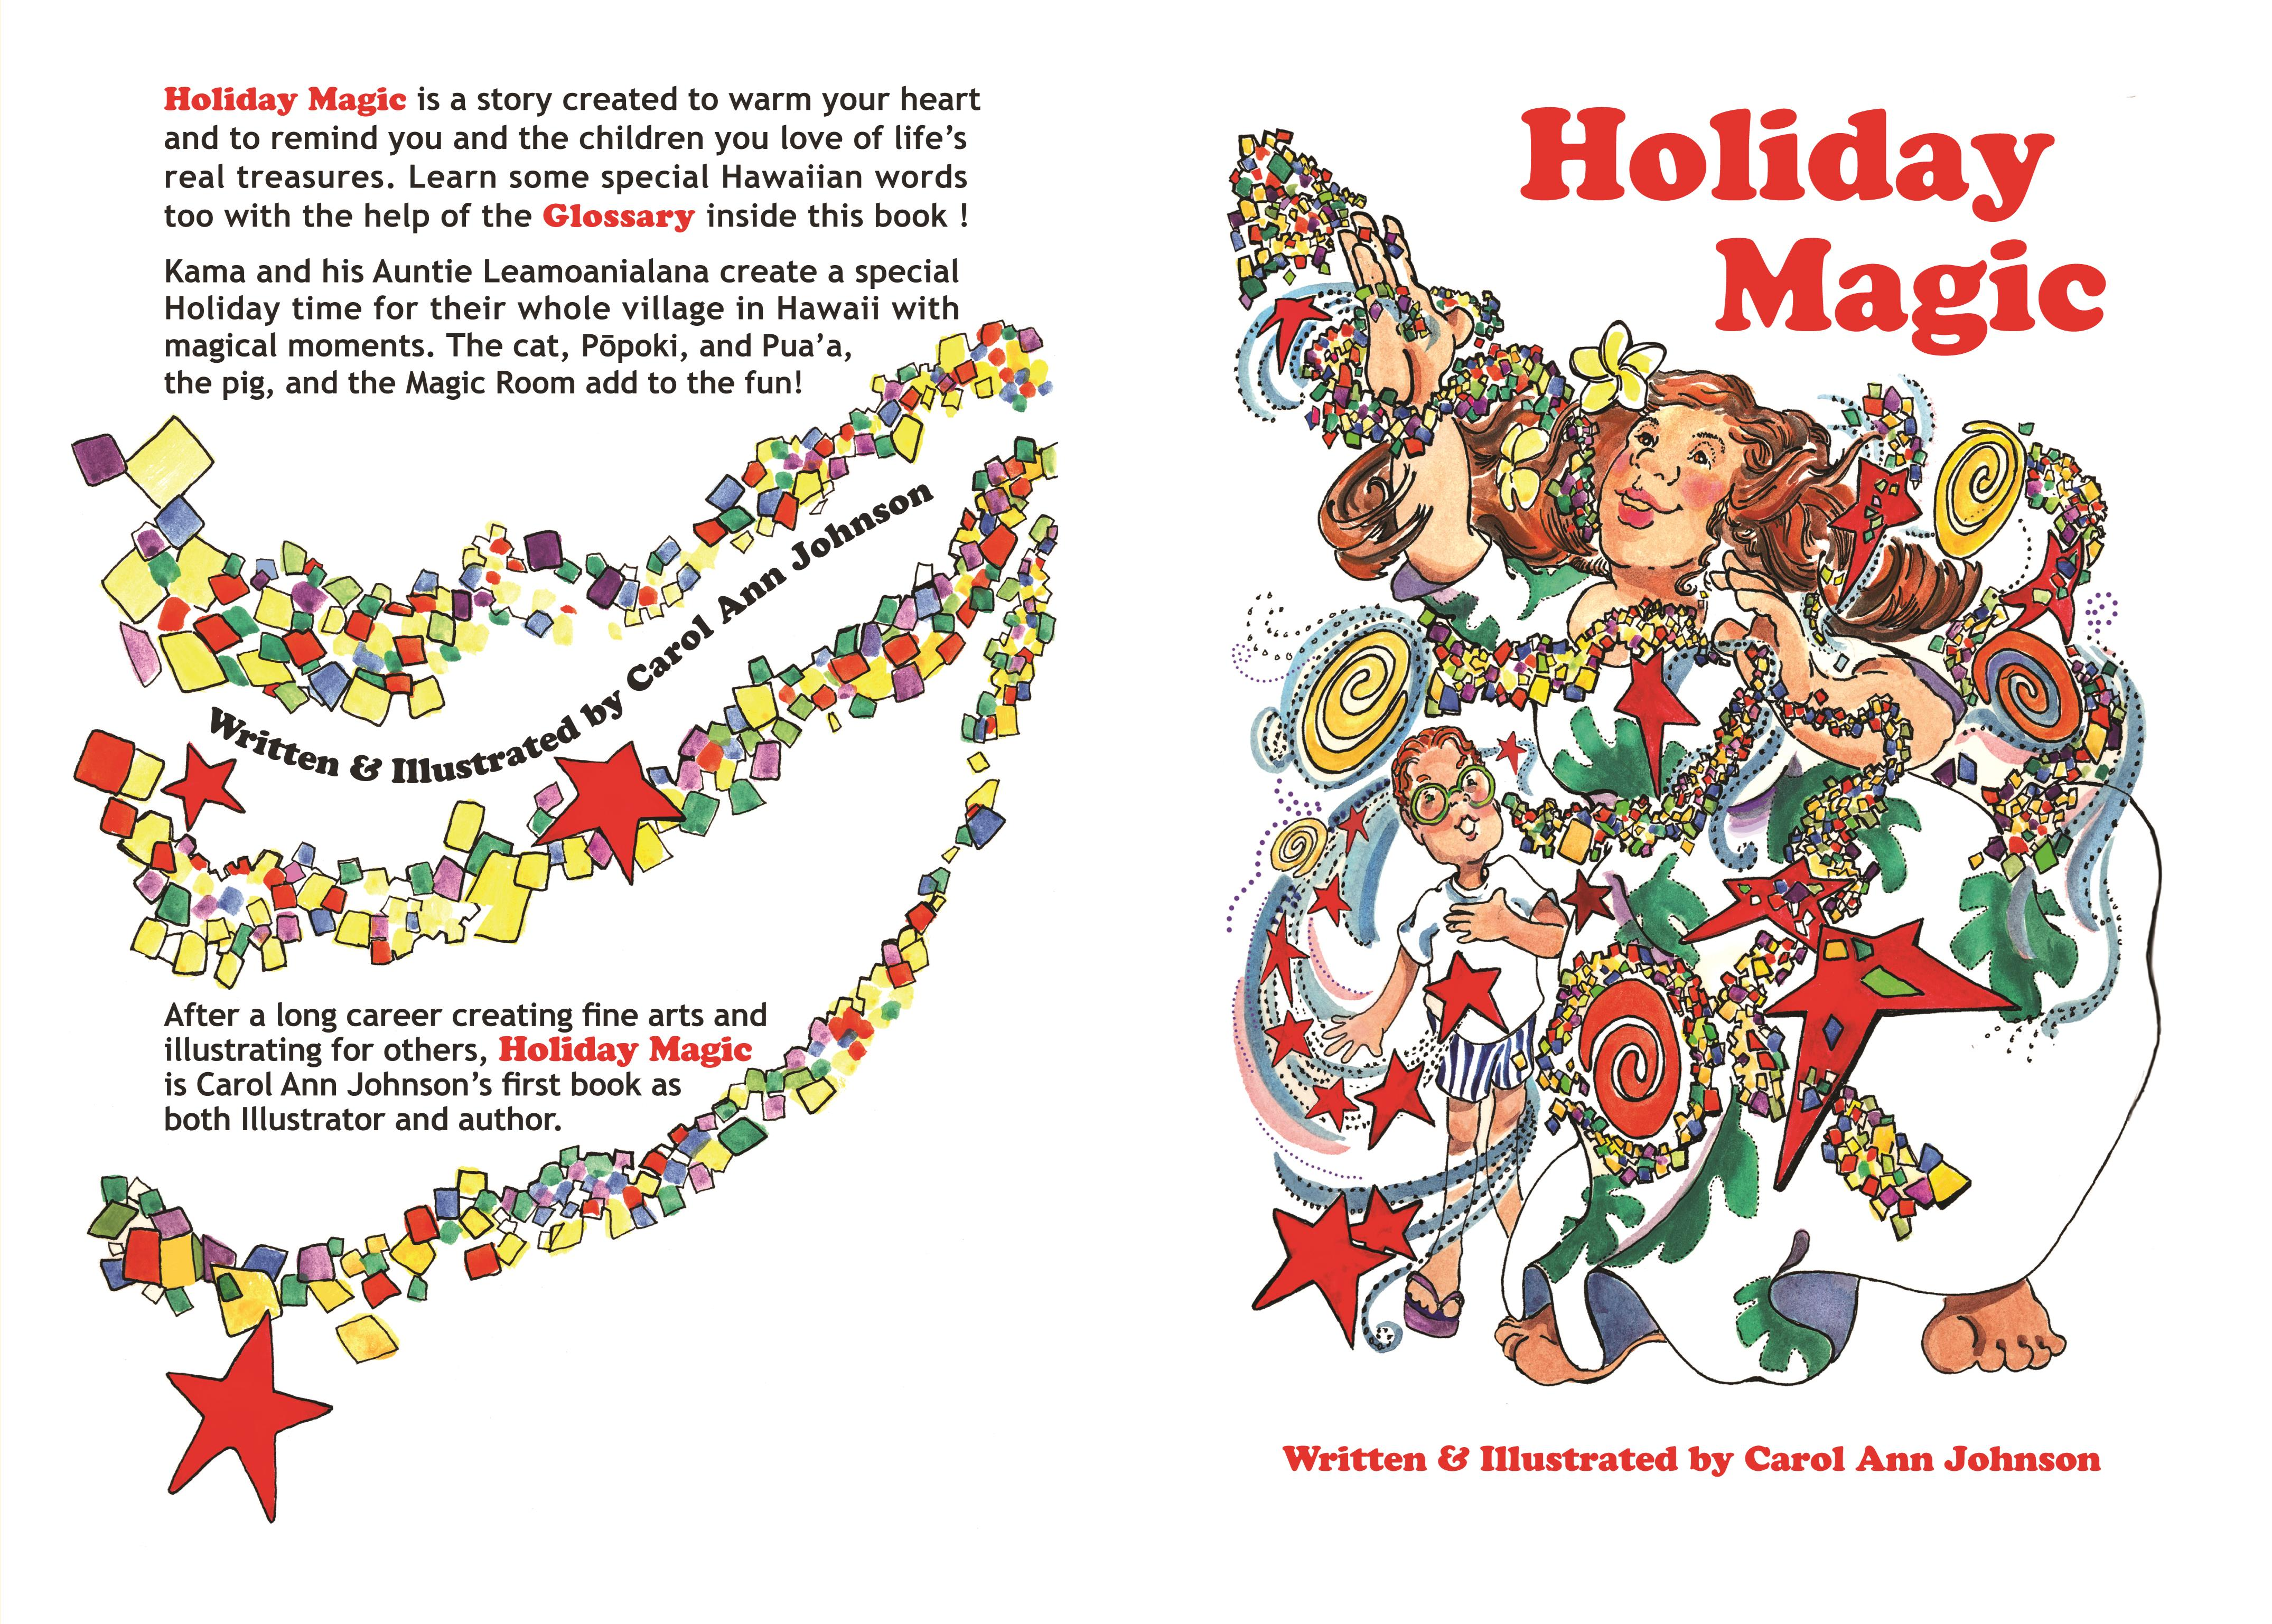 Holiday Magic cover image